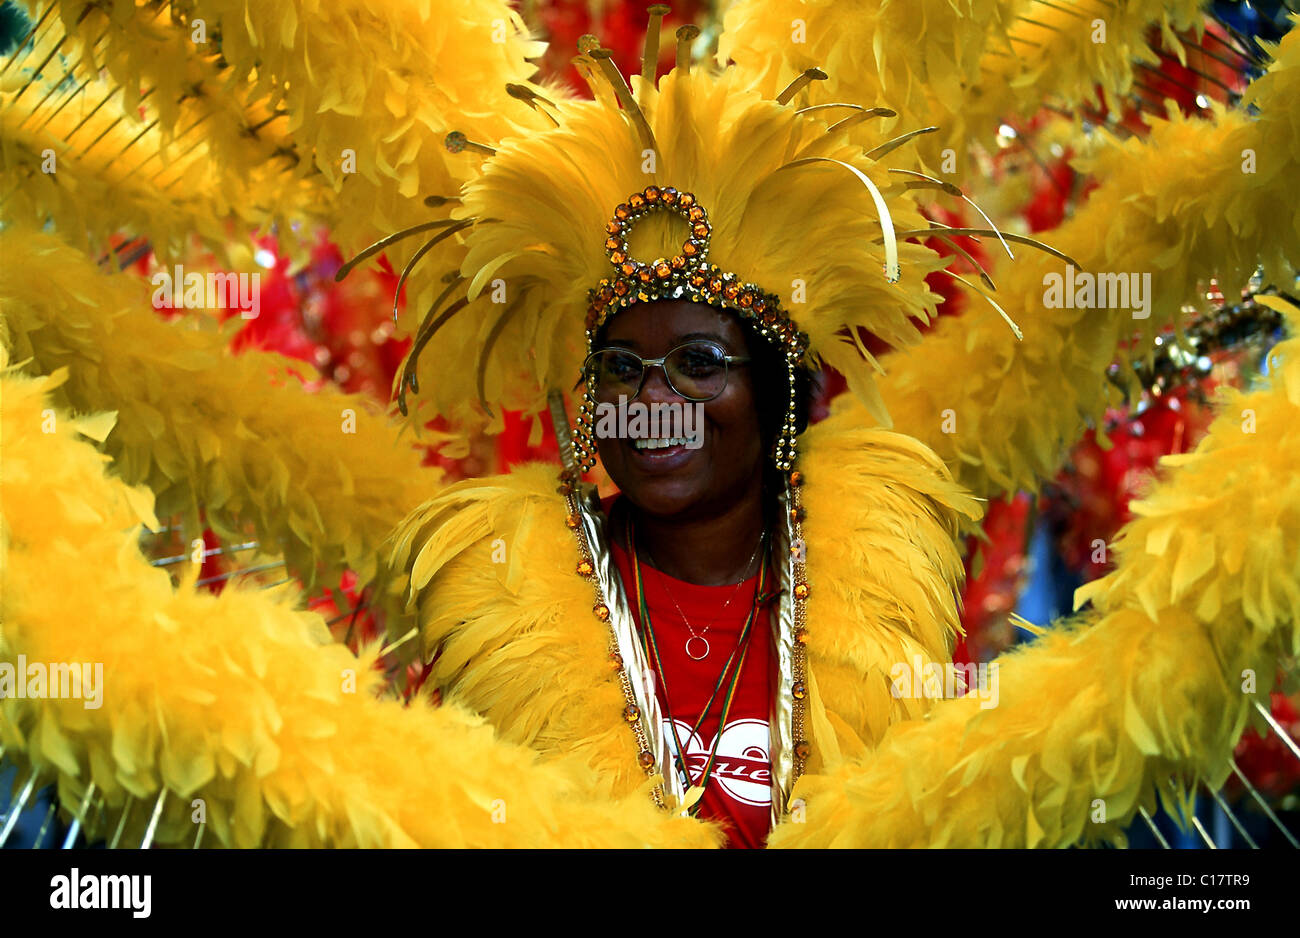 United Kingdom, London, Nothing Hill, the Jamaican carnival - Stock Image